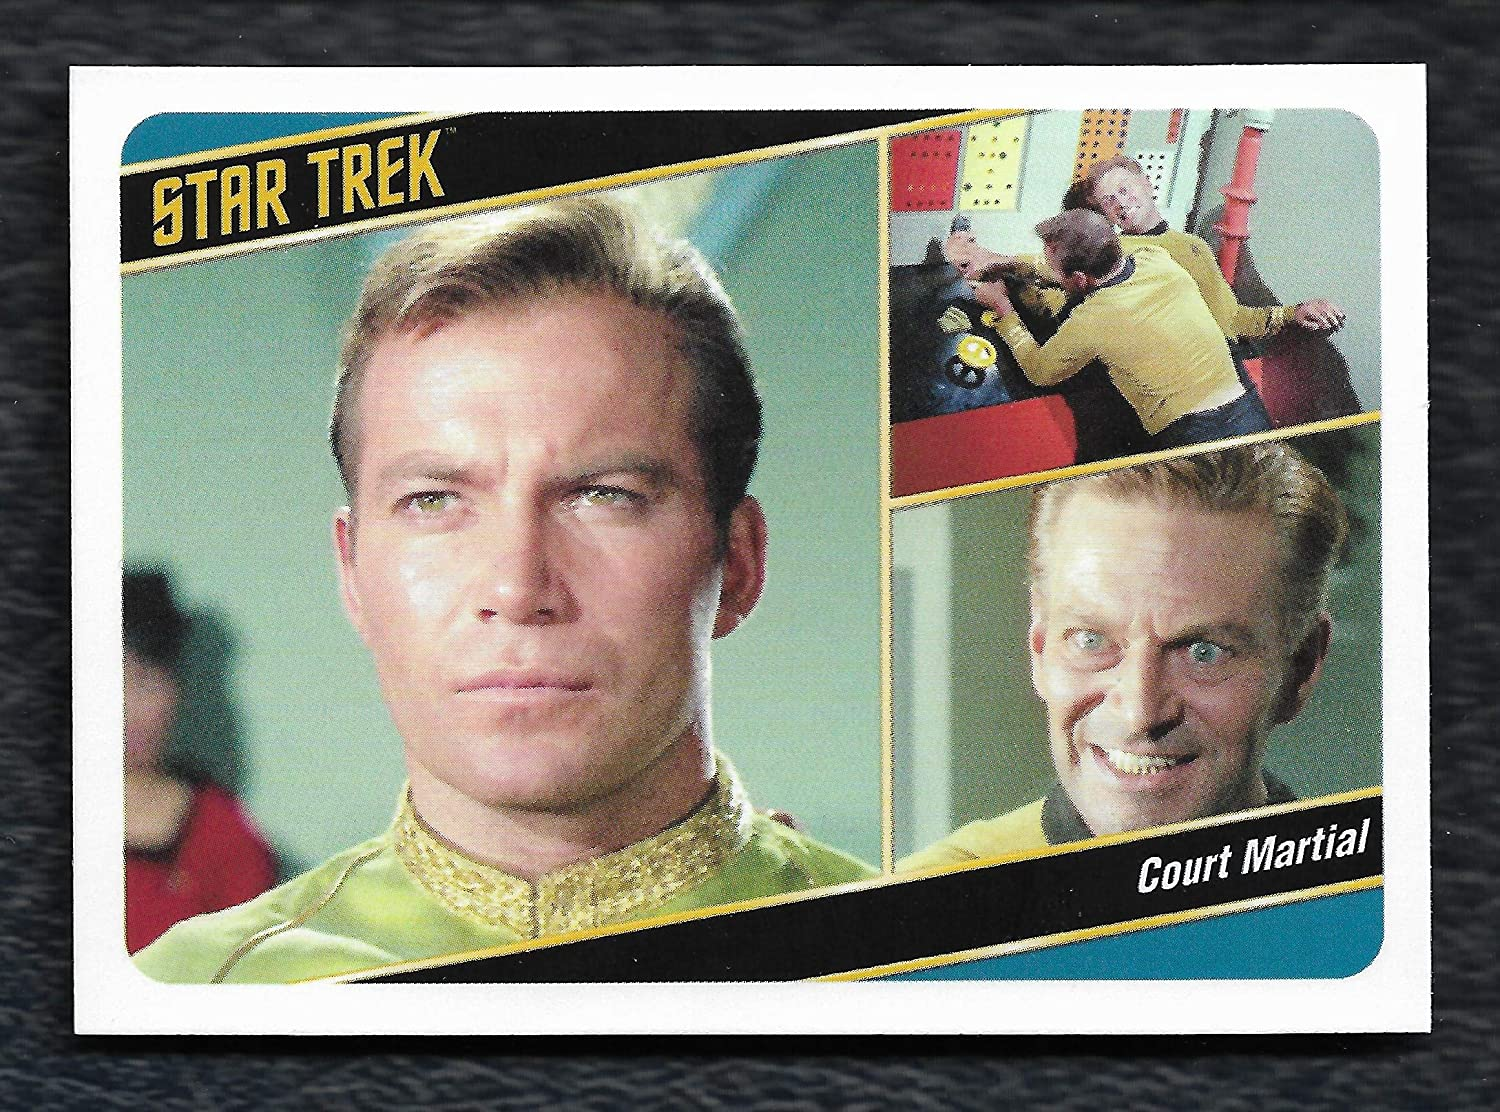 2018 Rittenhouse Archives Star Trek The Original Series TOS The Captains Collection Complete 80 Card Base Set